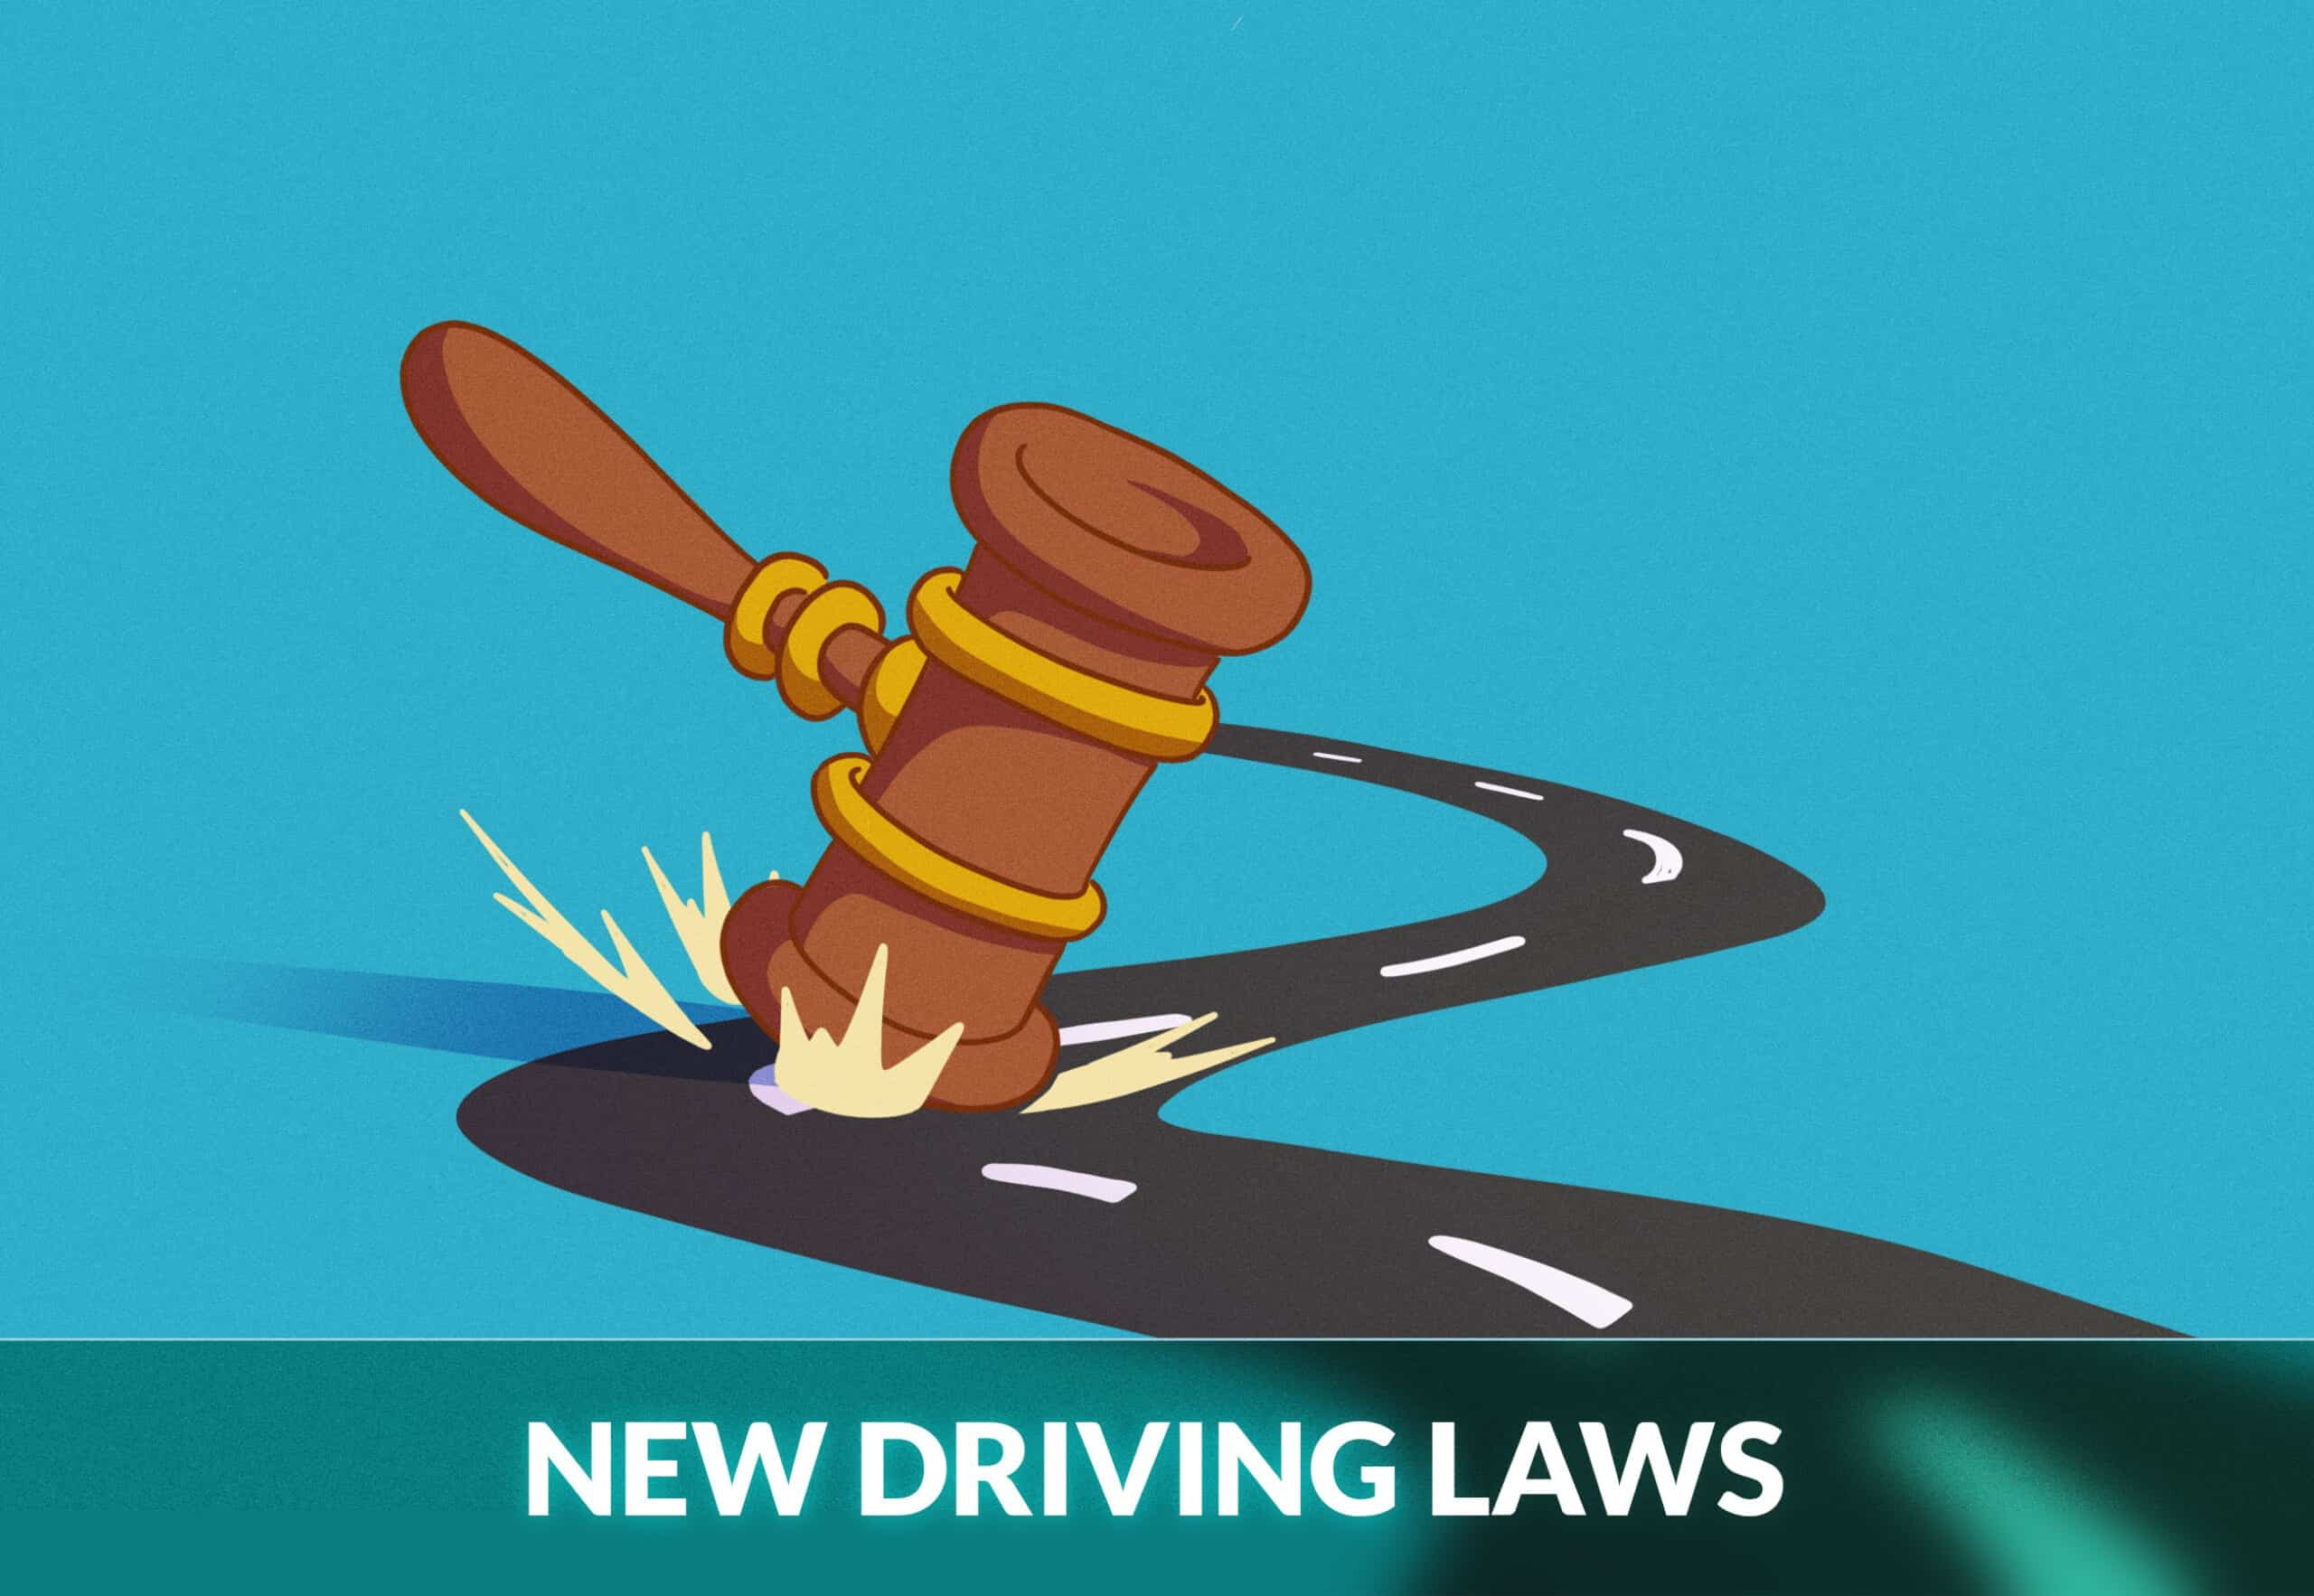 NEW DRIVING LAWS